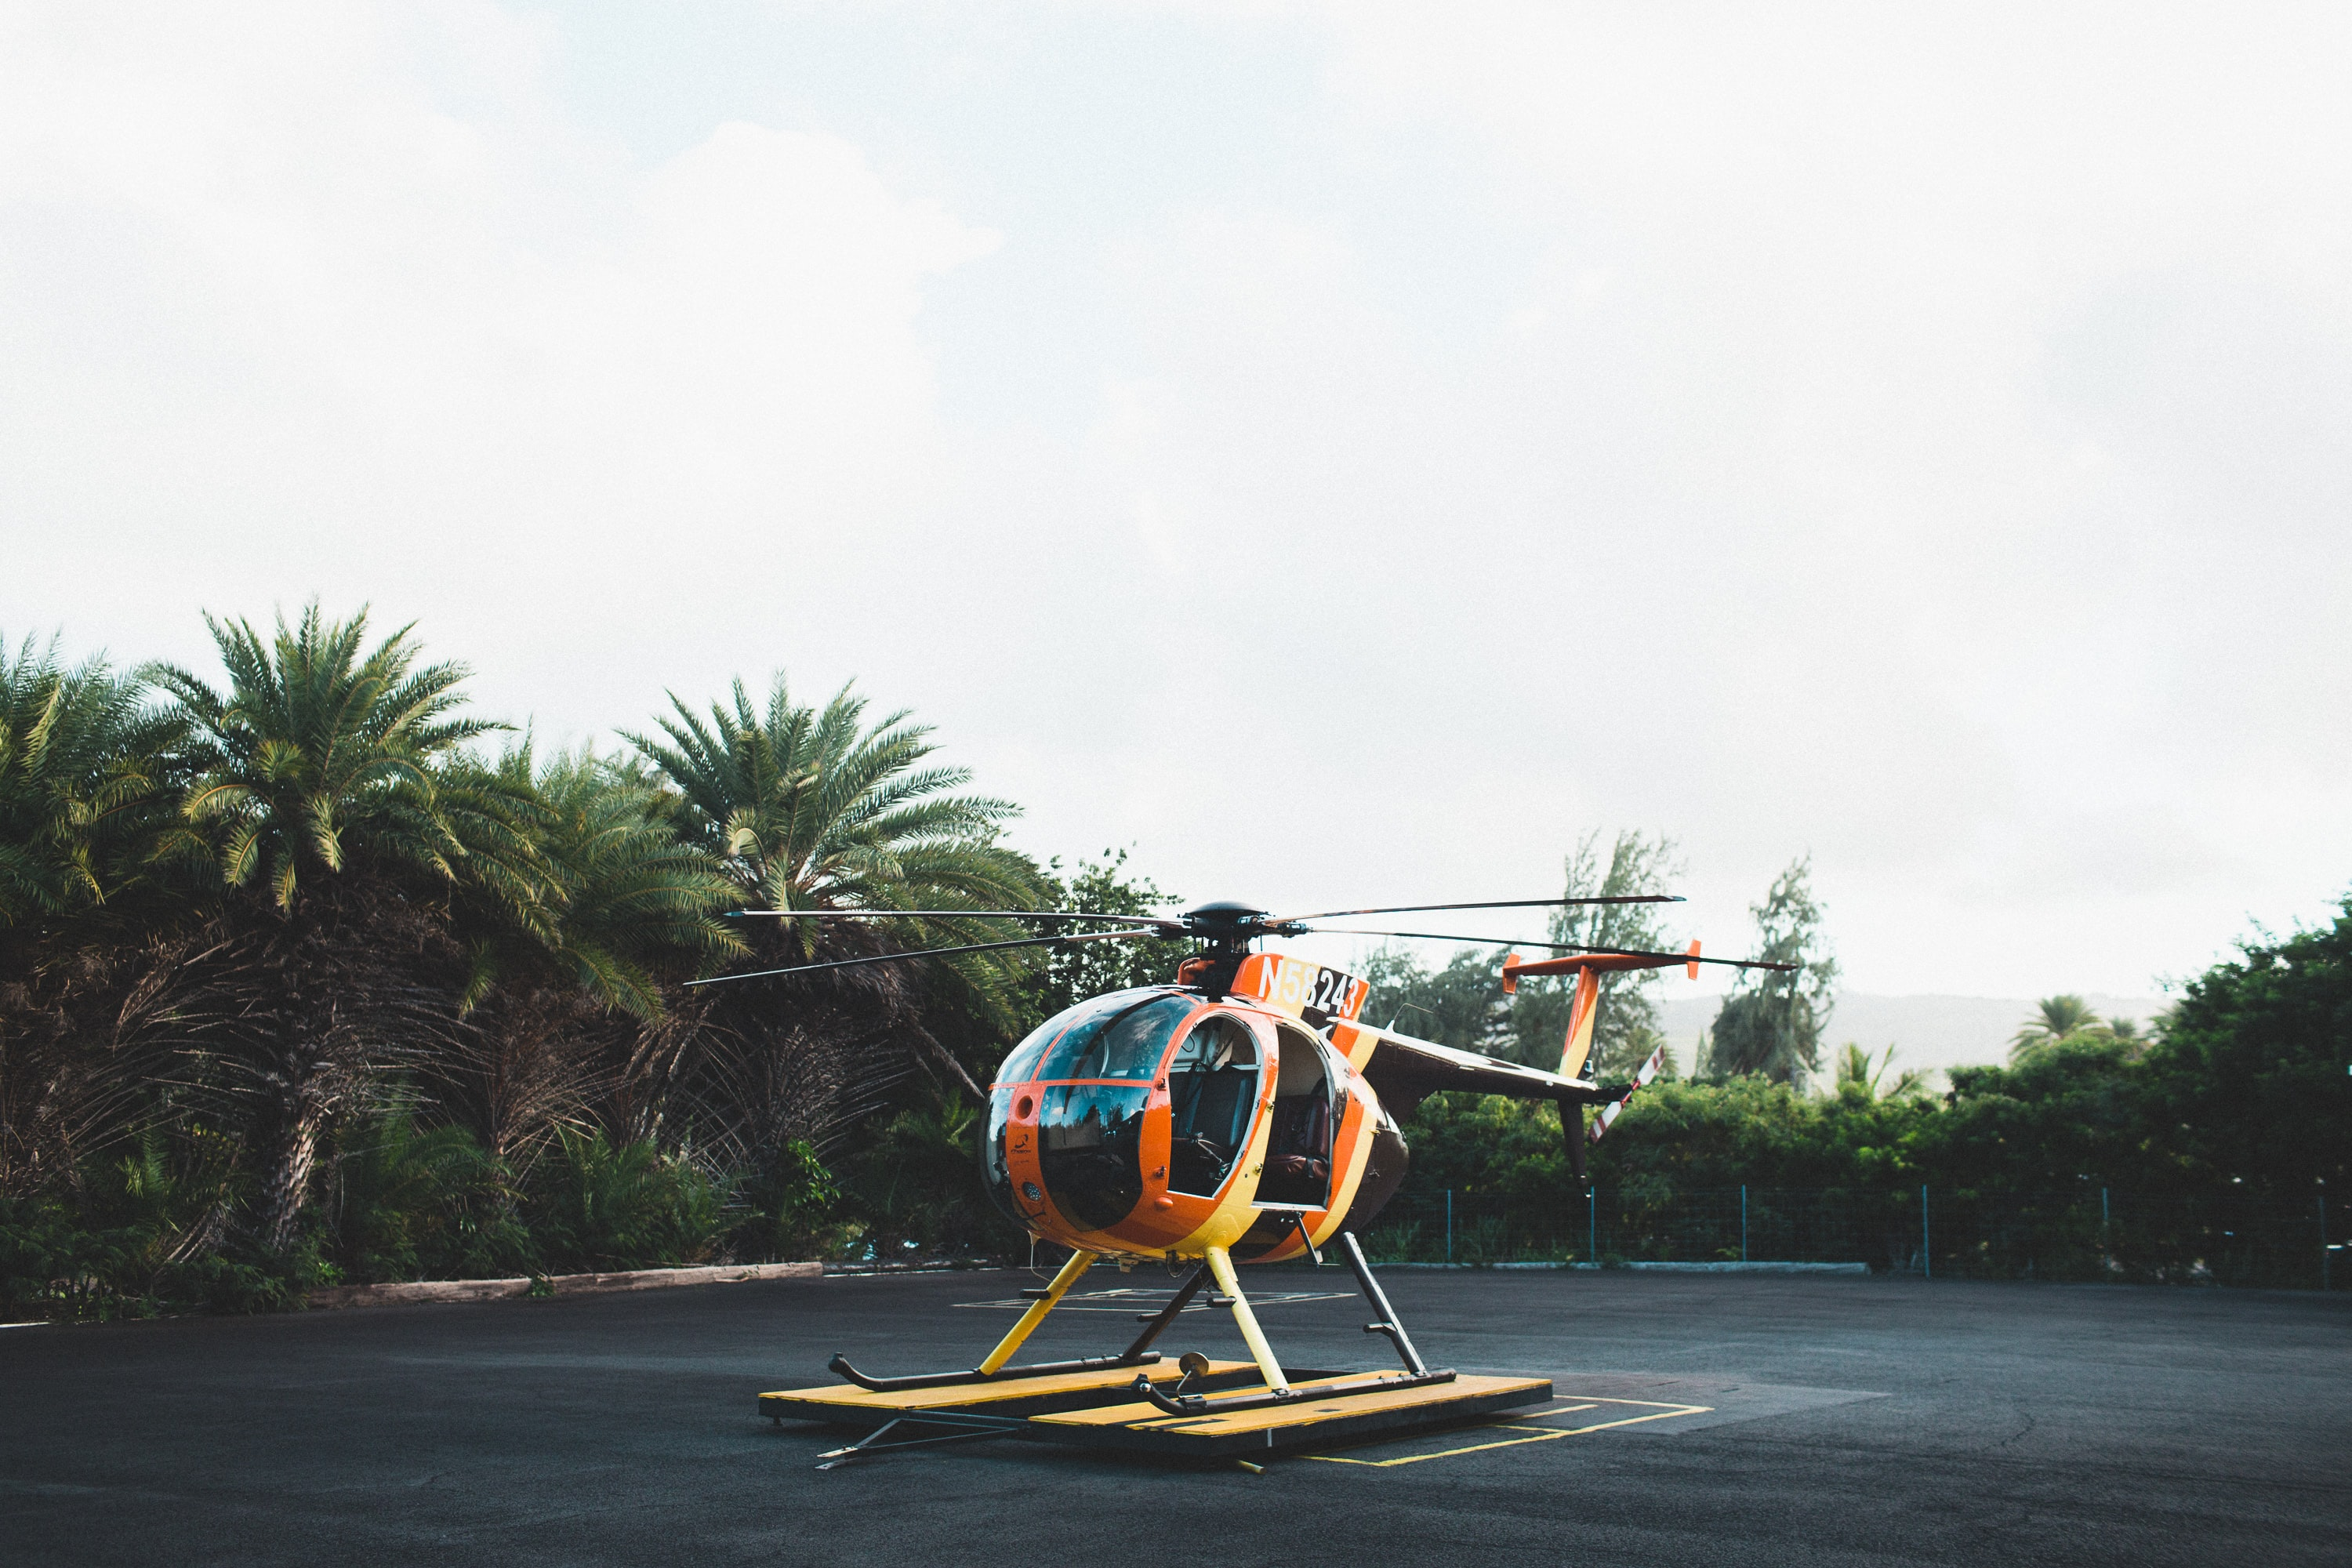 An orange helicopter on a landing pad surrounded by palm trees